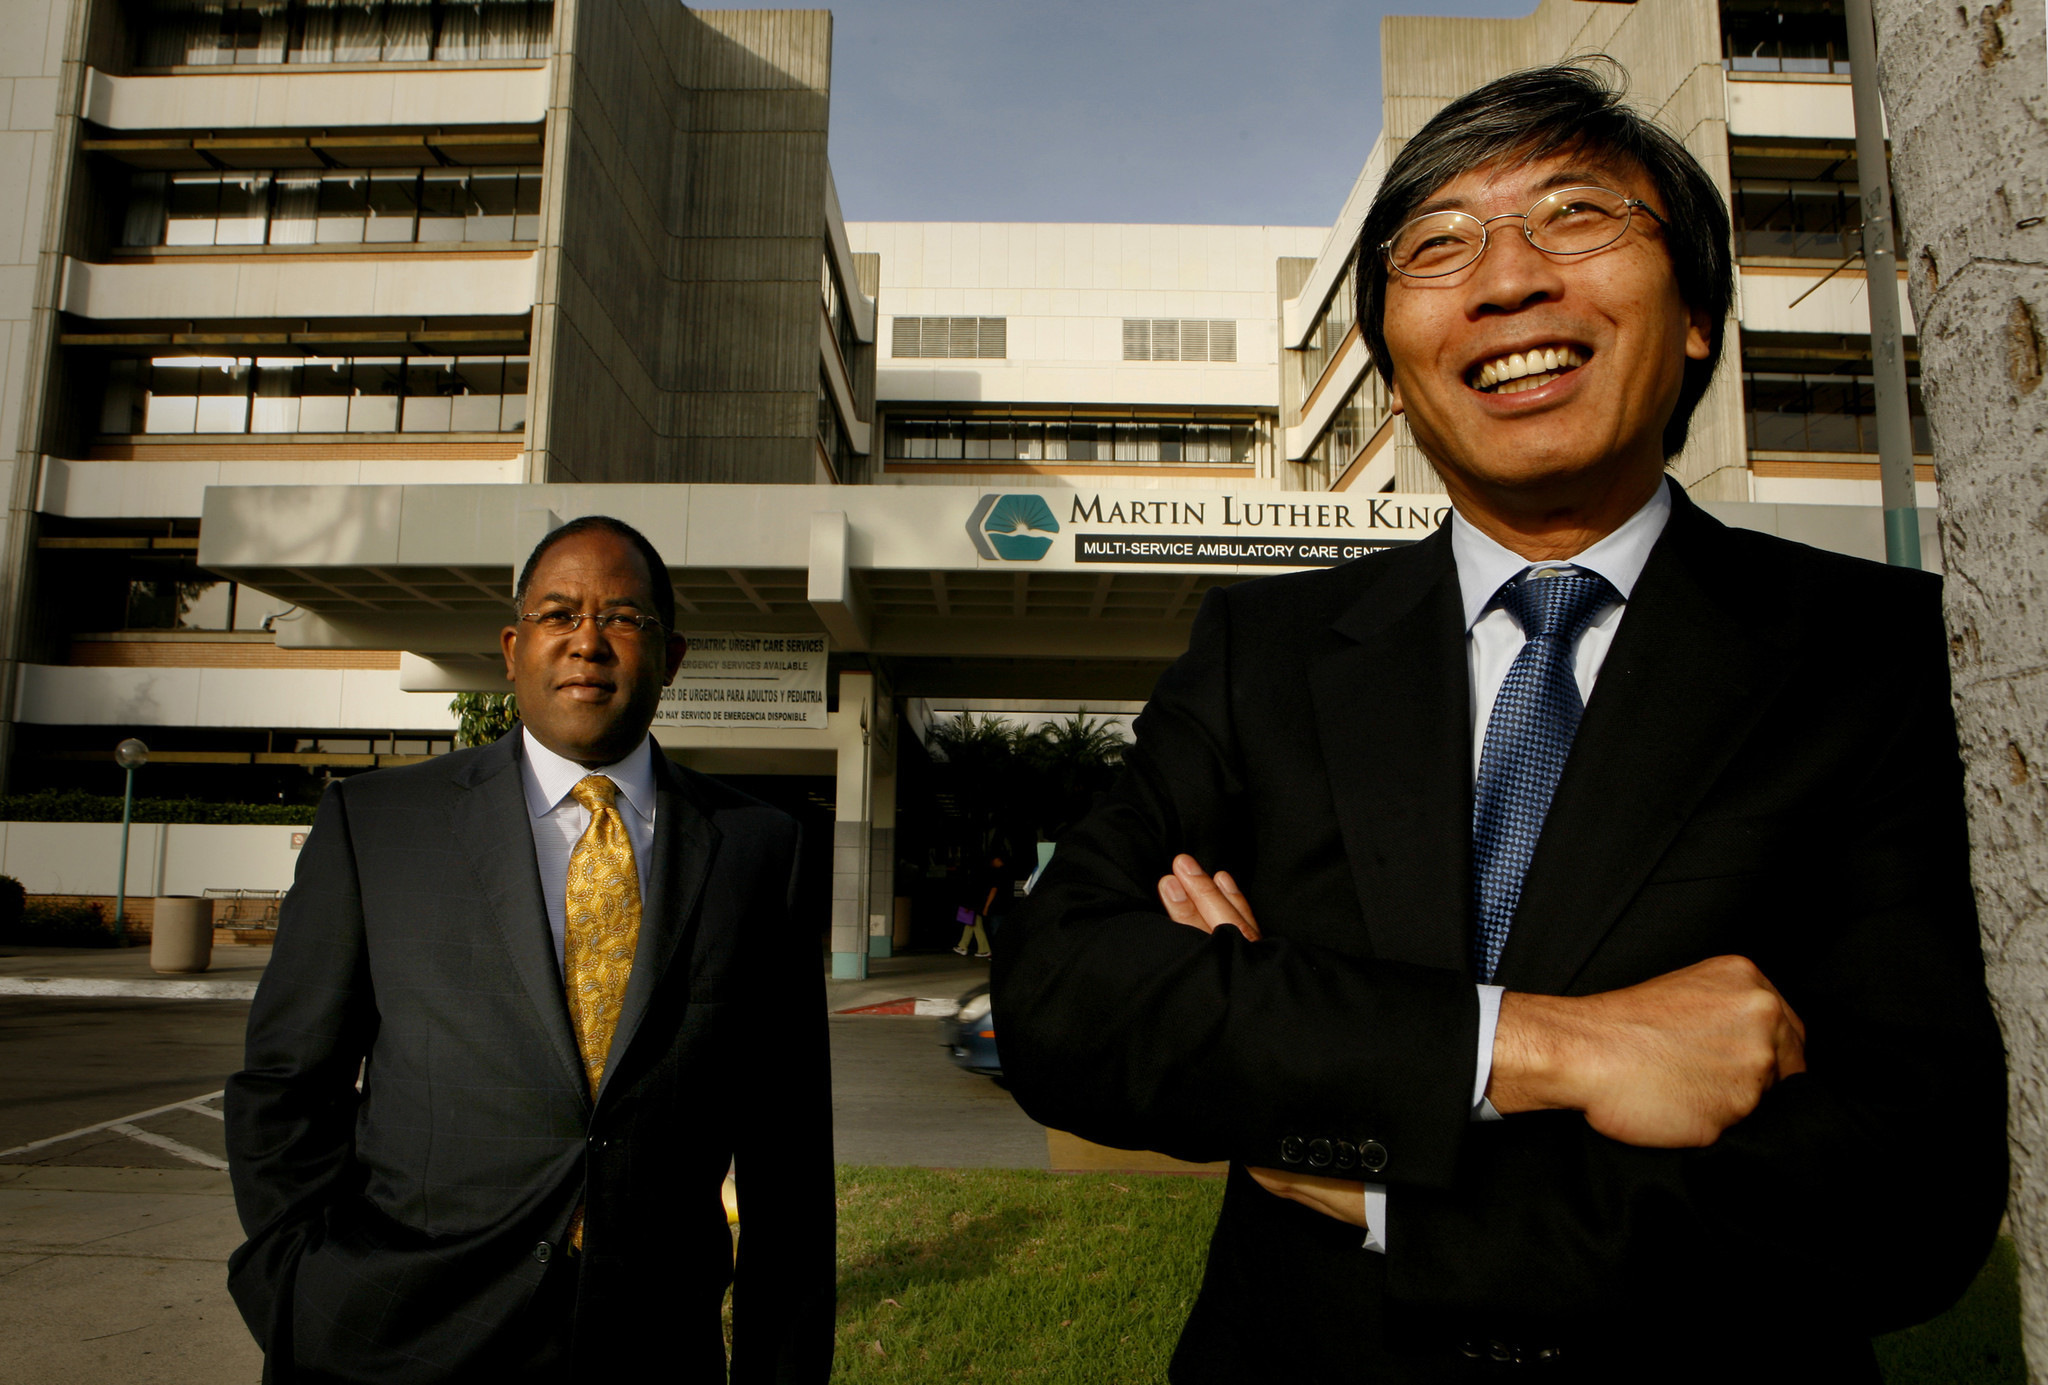 Supervisor Mark Ridley-Thomas and Dr. Patrick Soon-Shiong